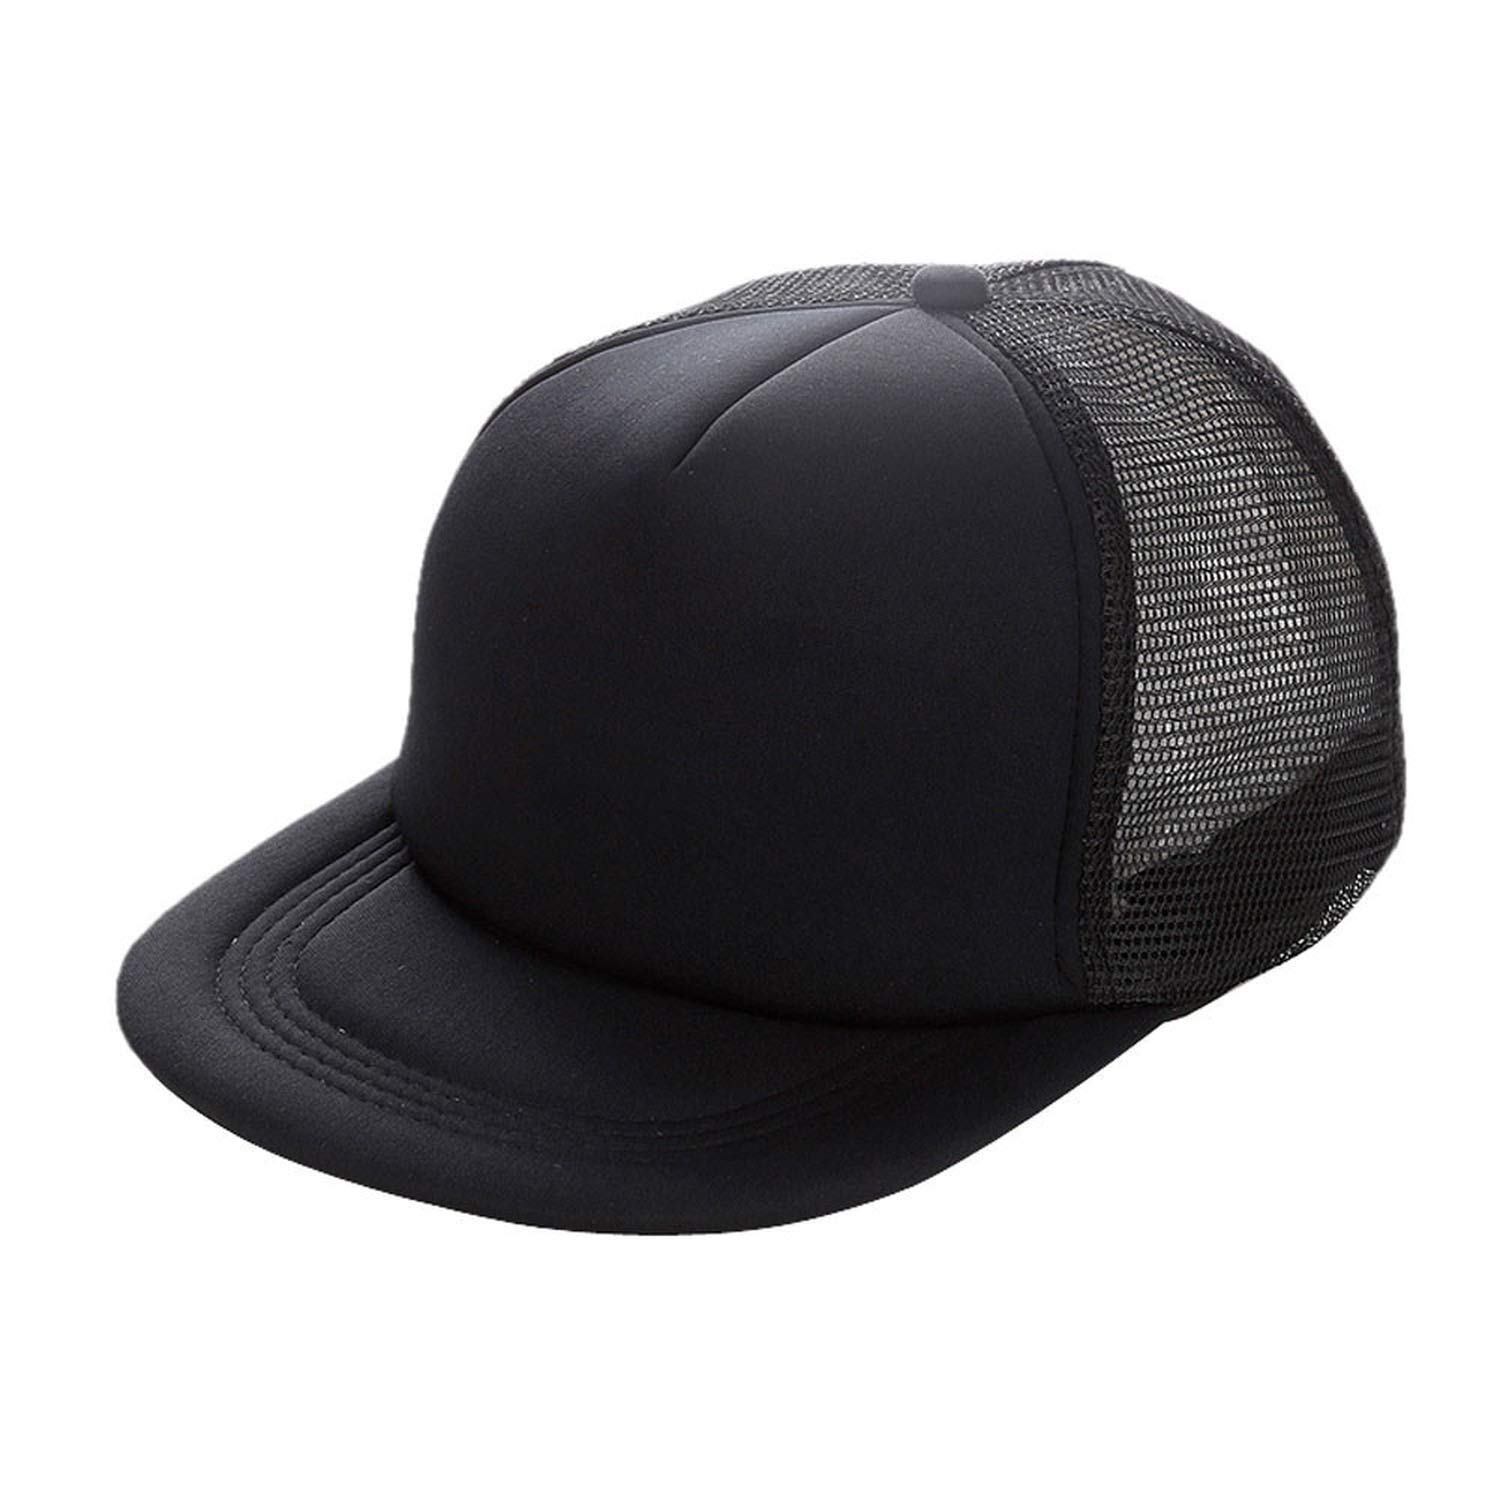 Eric Carl Baseball Cap Gorras Hombre Hats Patchwork Hip Hop Caps Mesh Cap Hats for Men Women Black at Amazon Mens Clothing store: